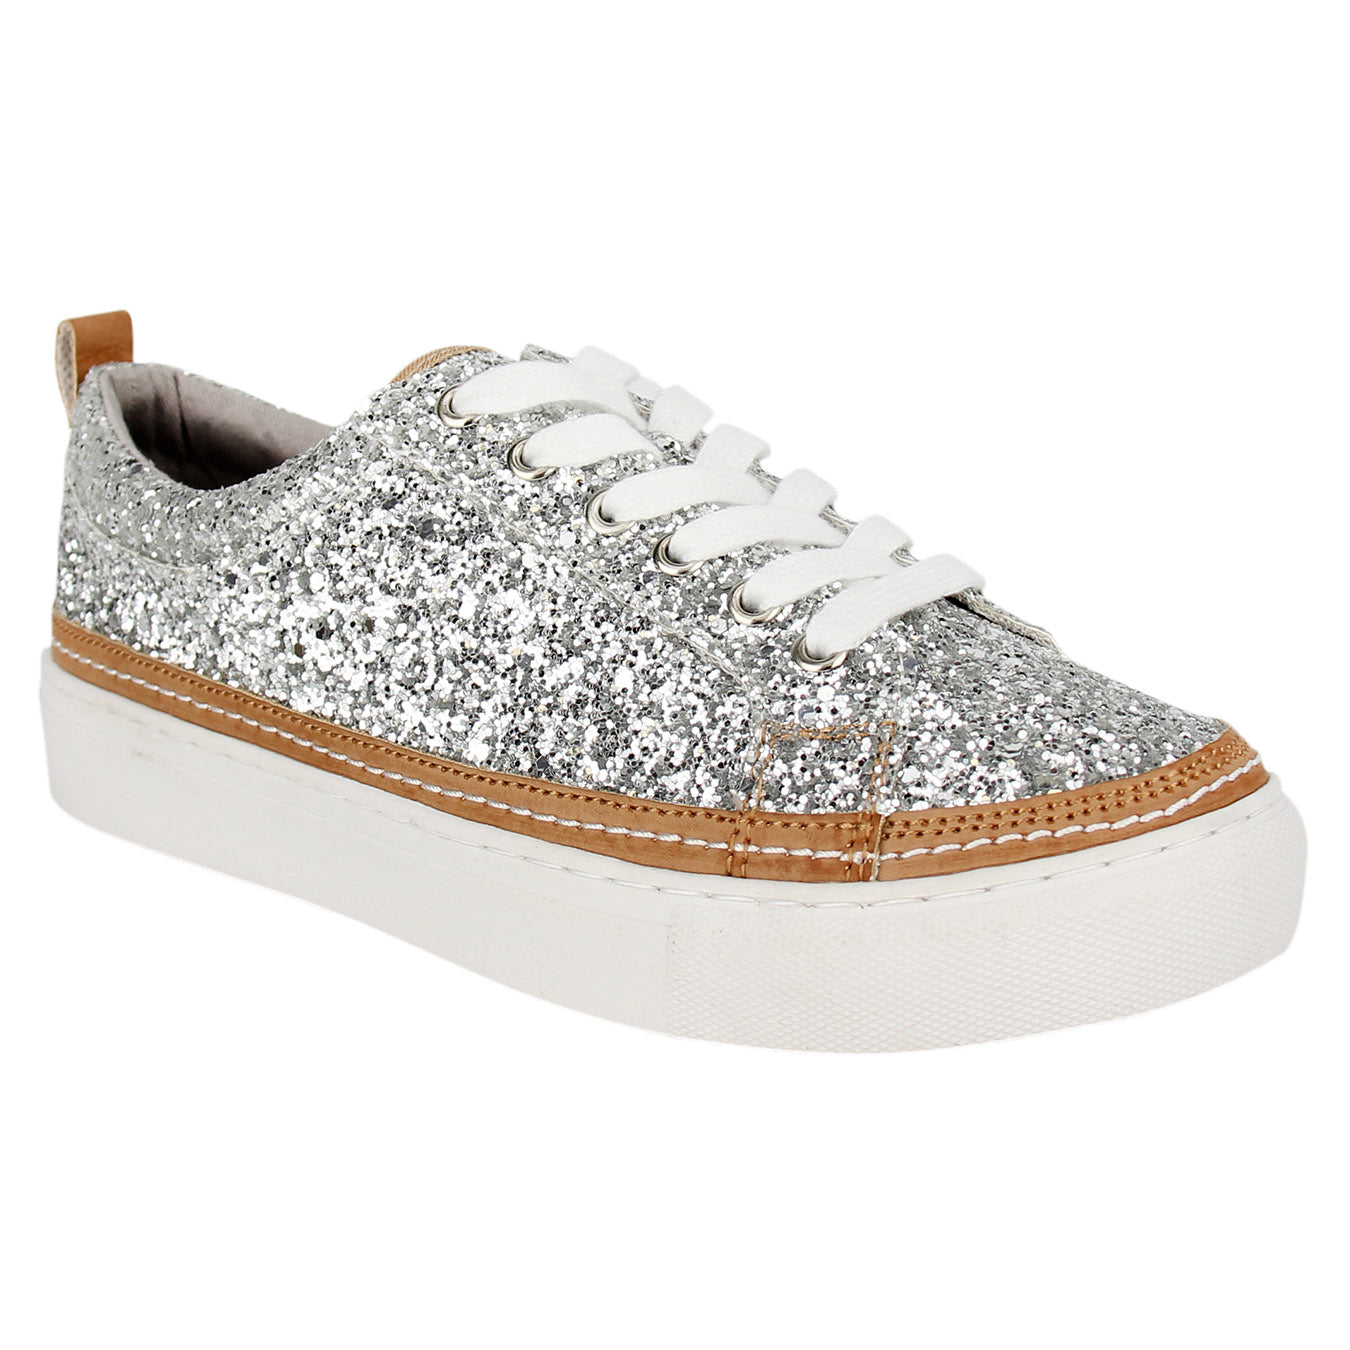 Not_Rated_sneaker_glitter_sparkle_silver_Chestnut_women's